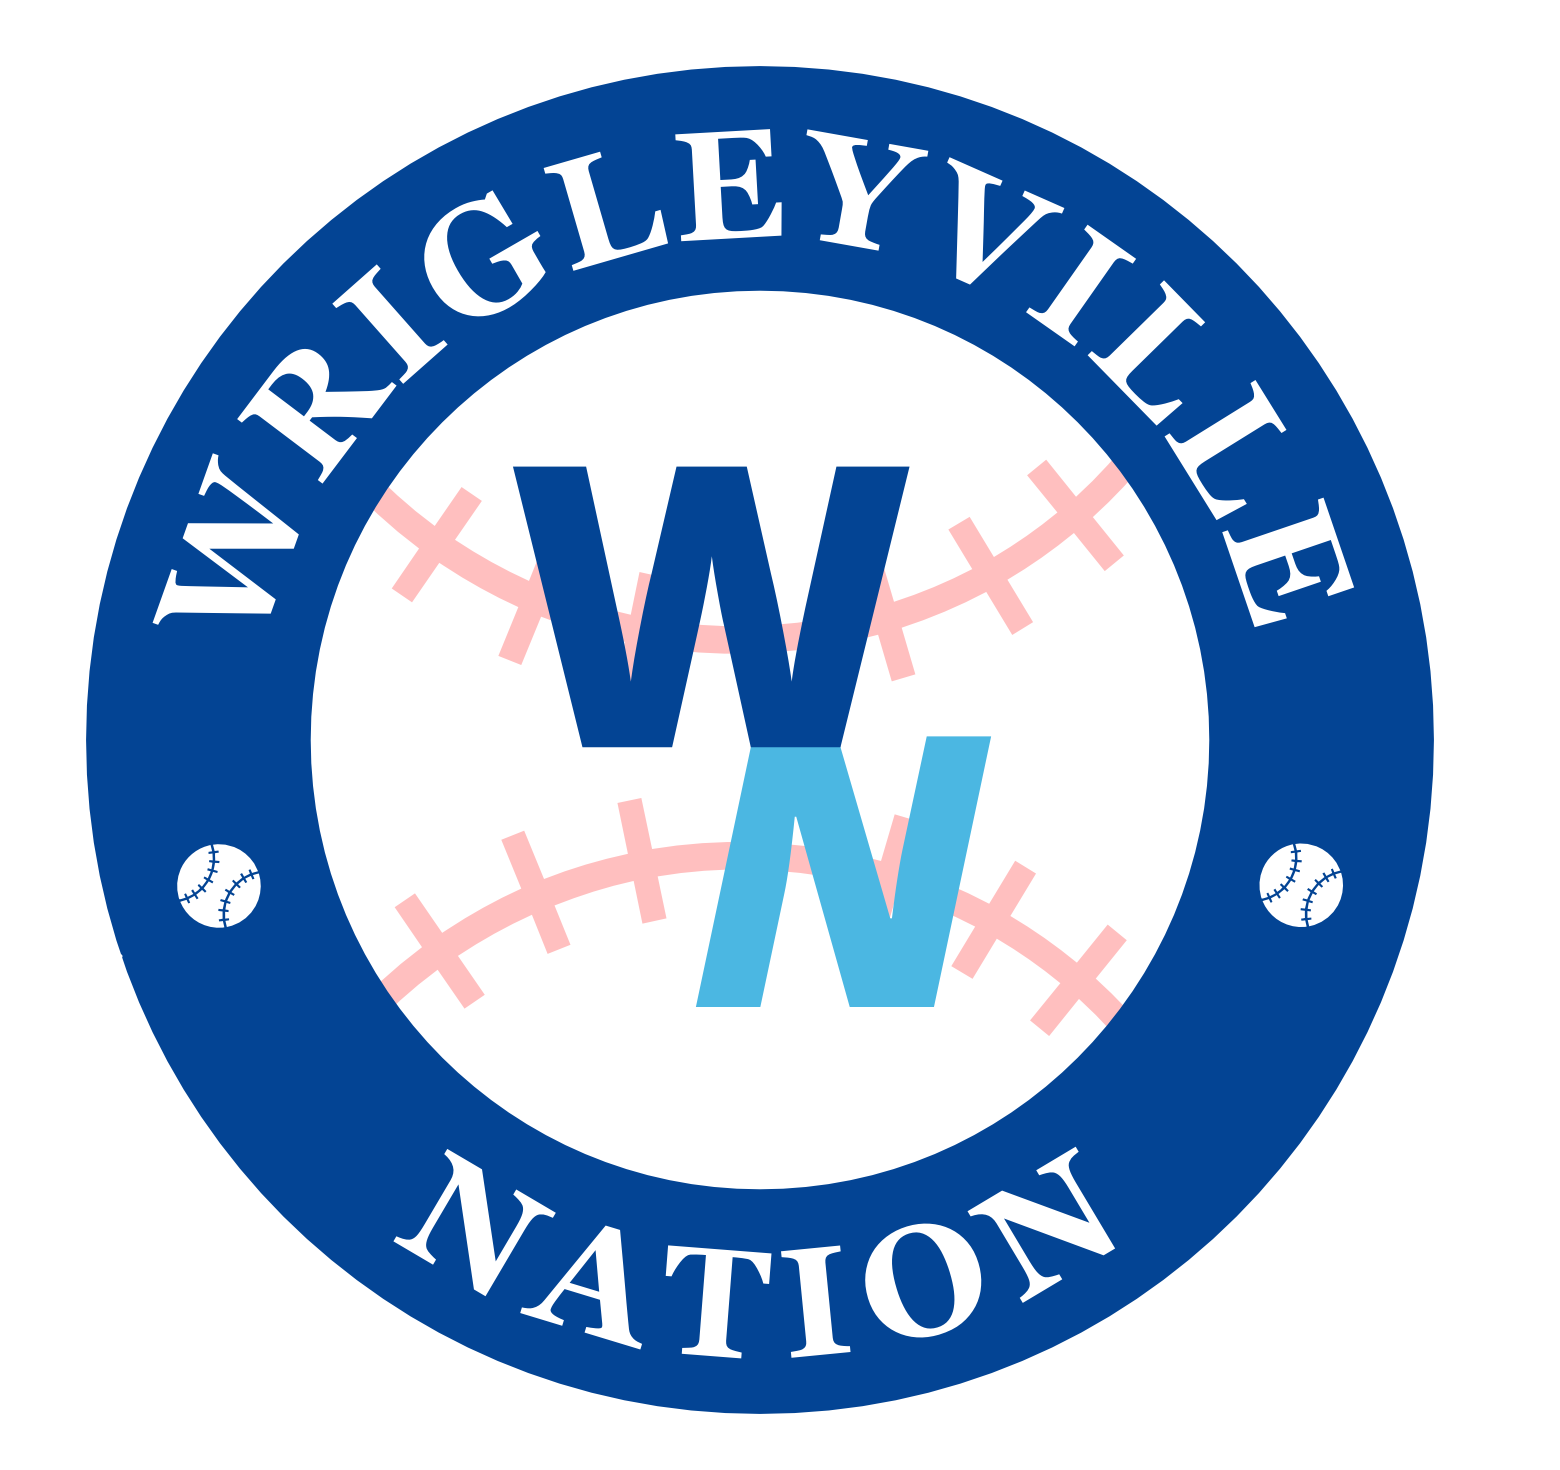 Wrigleyville Nation Ep 203 - Hosts Only, Cubs 2nd Half Begins, Monty Traded show art